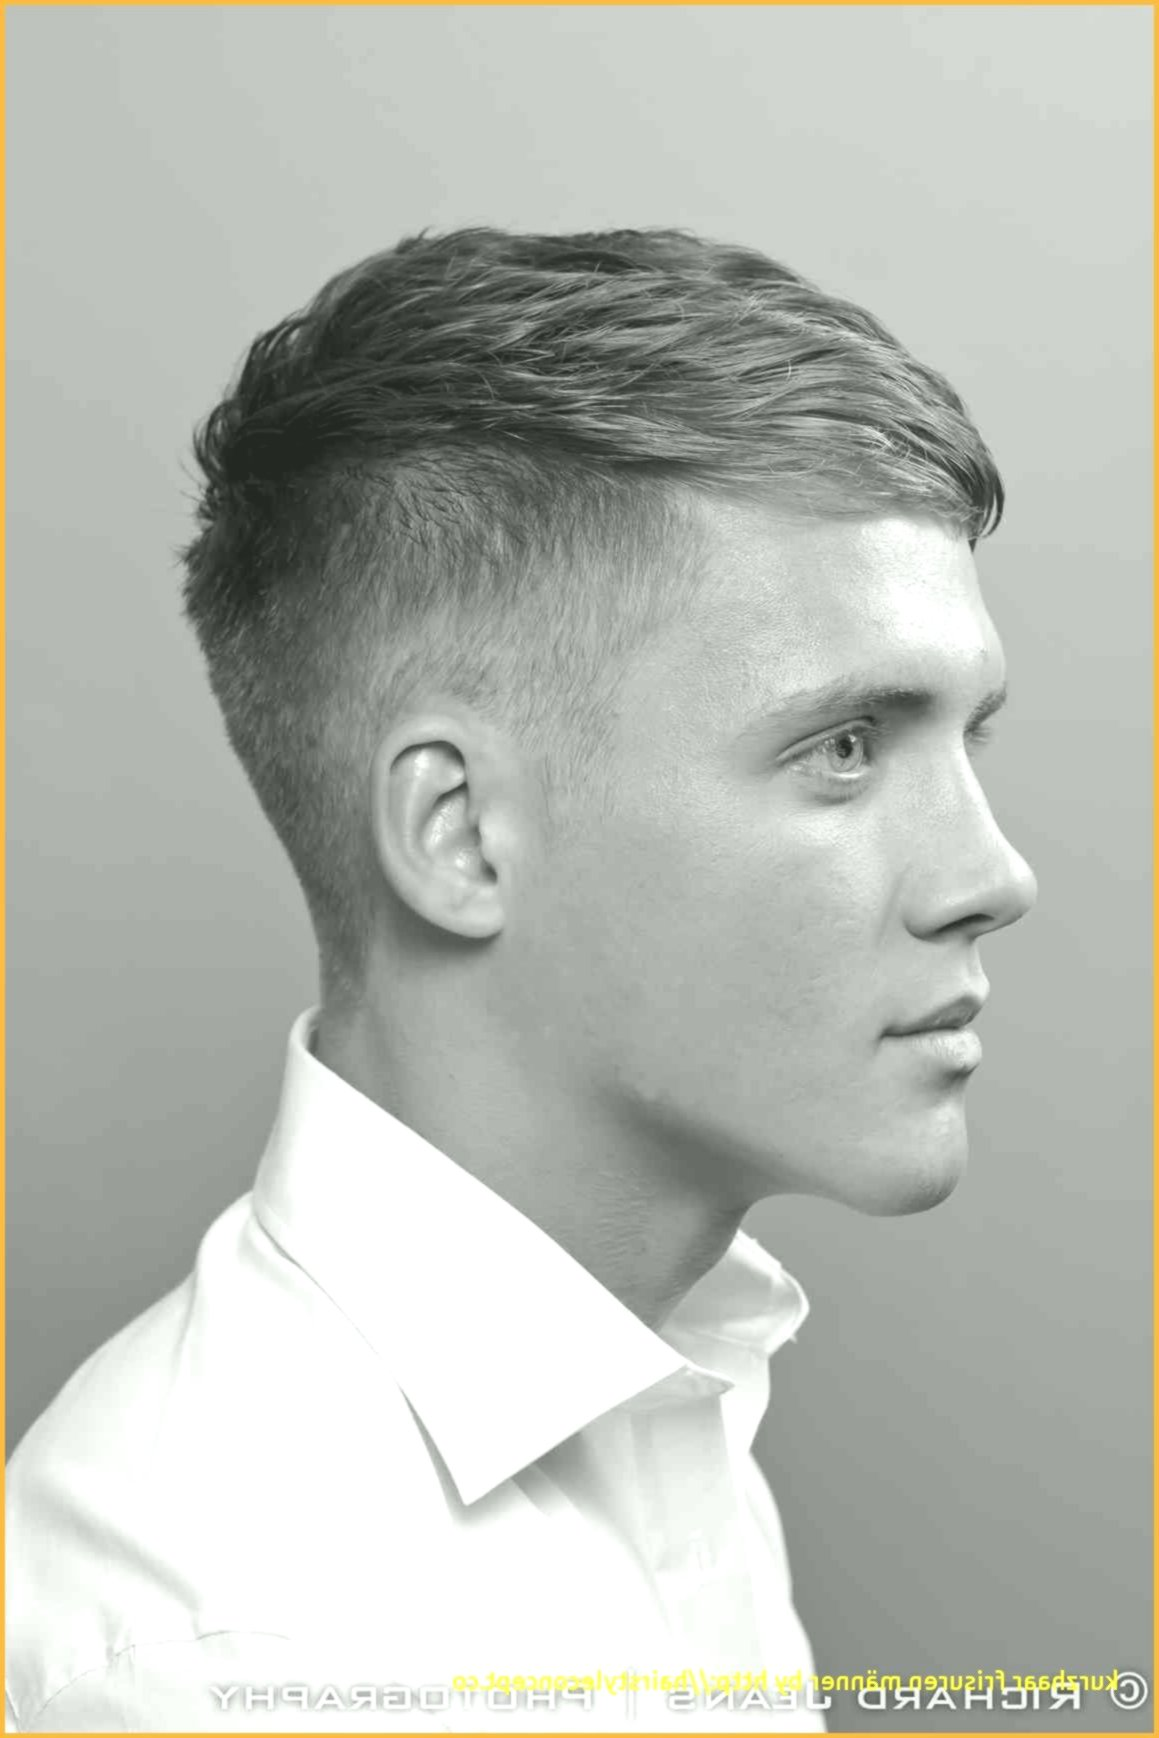 lovely short hairstyles men's design-modern short hairstyles mens wall